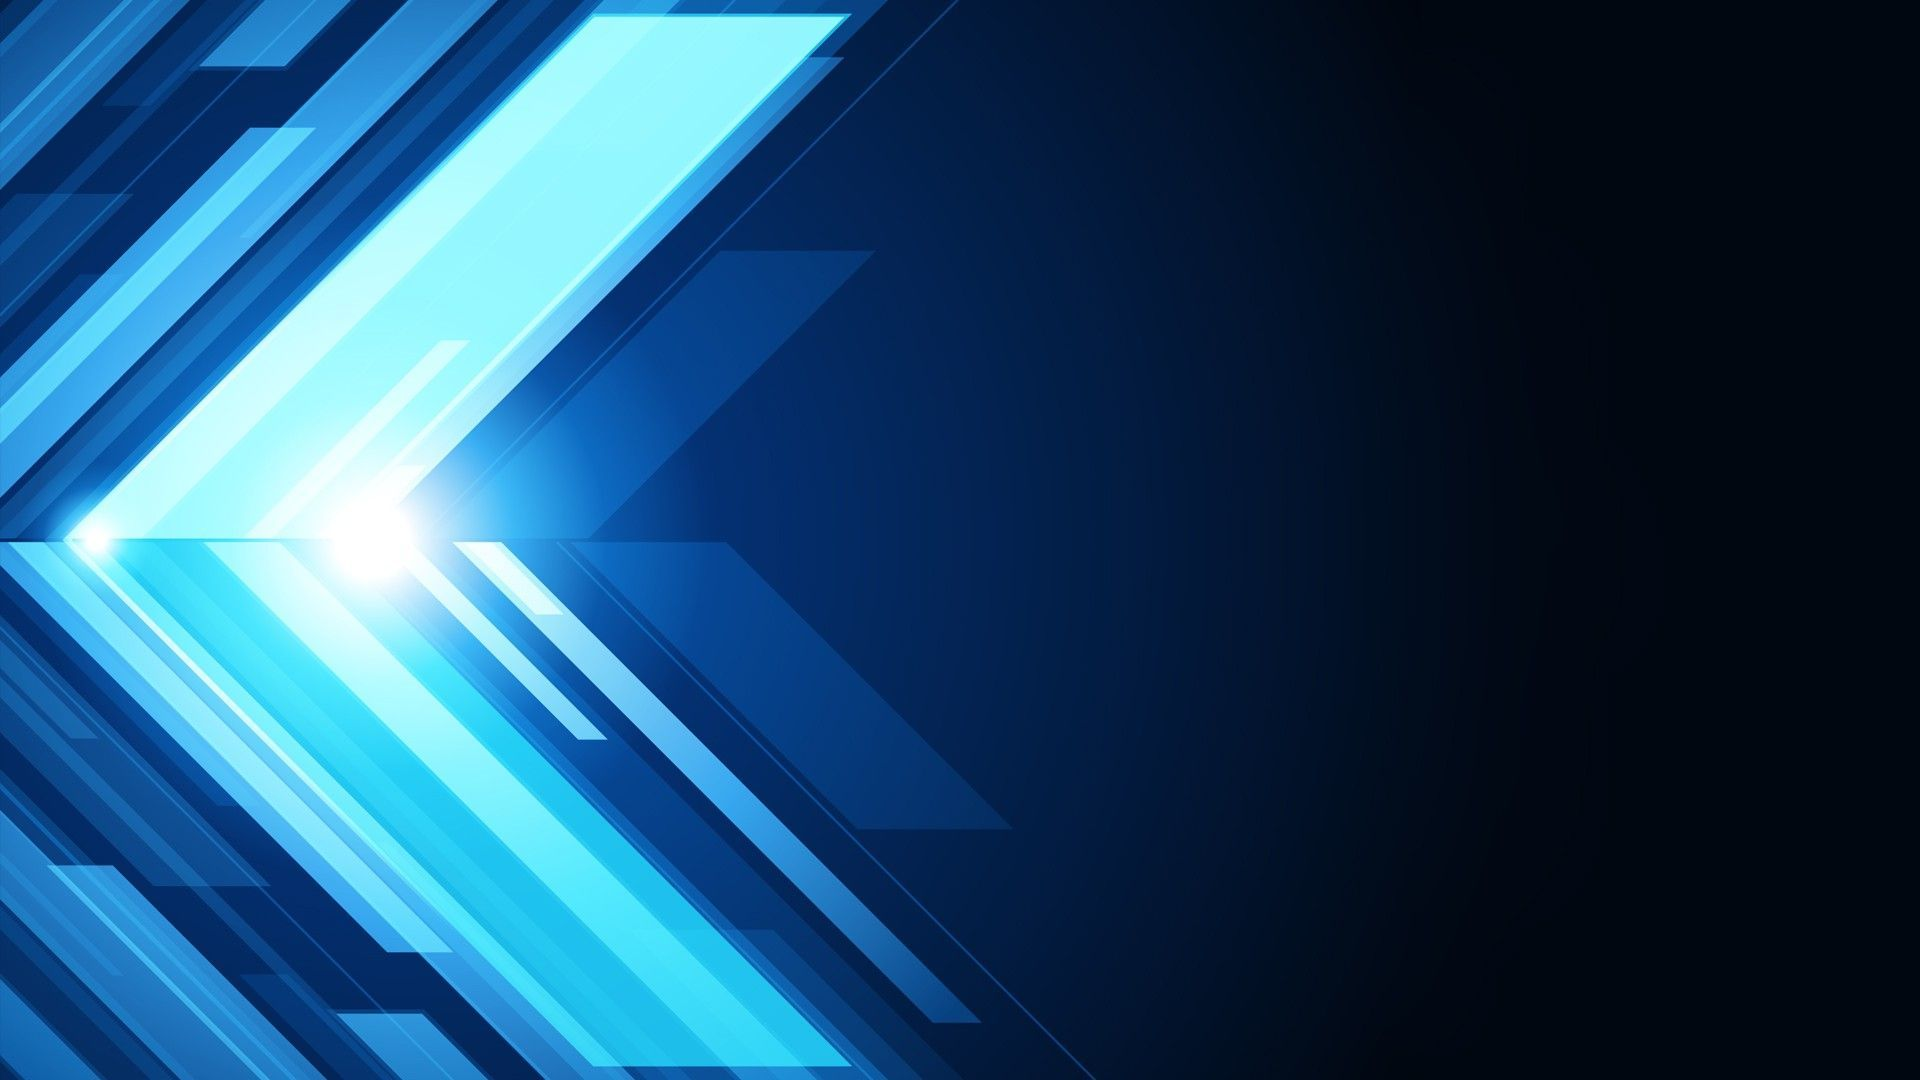 Blue Abstract Wallpaper   QyGjxZ 1920x1080